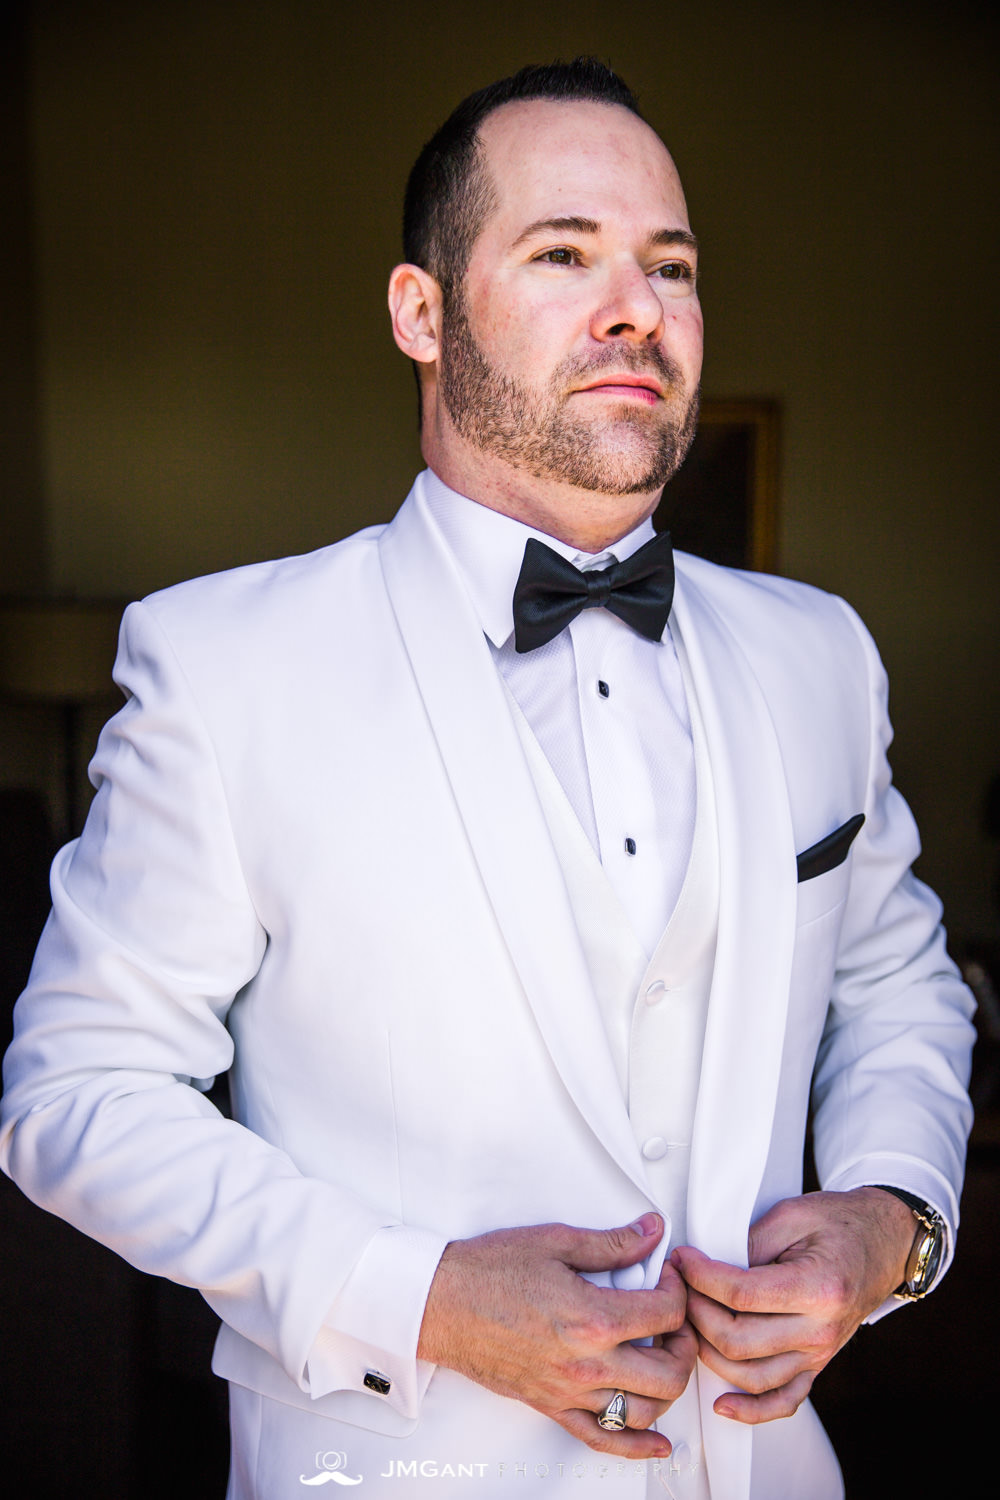 Vail Colorado Wedding | Groom and groomsmen getting ready | Colorado wedding photographer | © JMGant Photography | http://www.jmgantphotography.com/